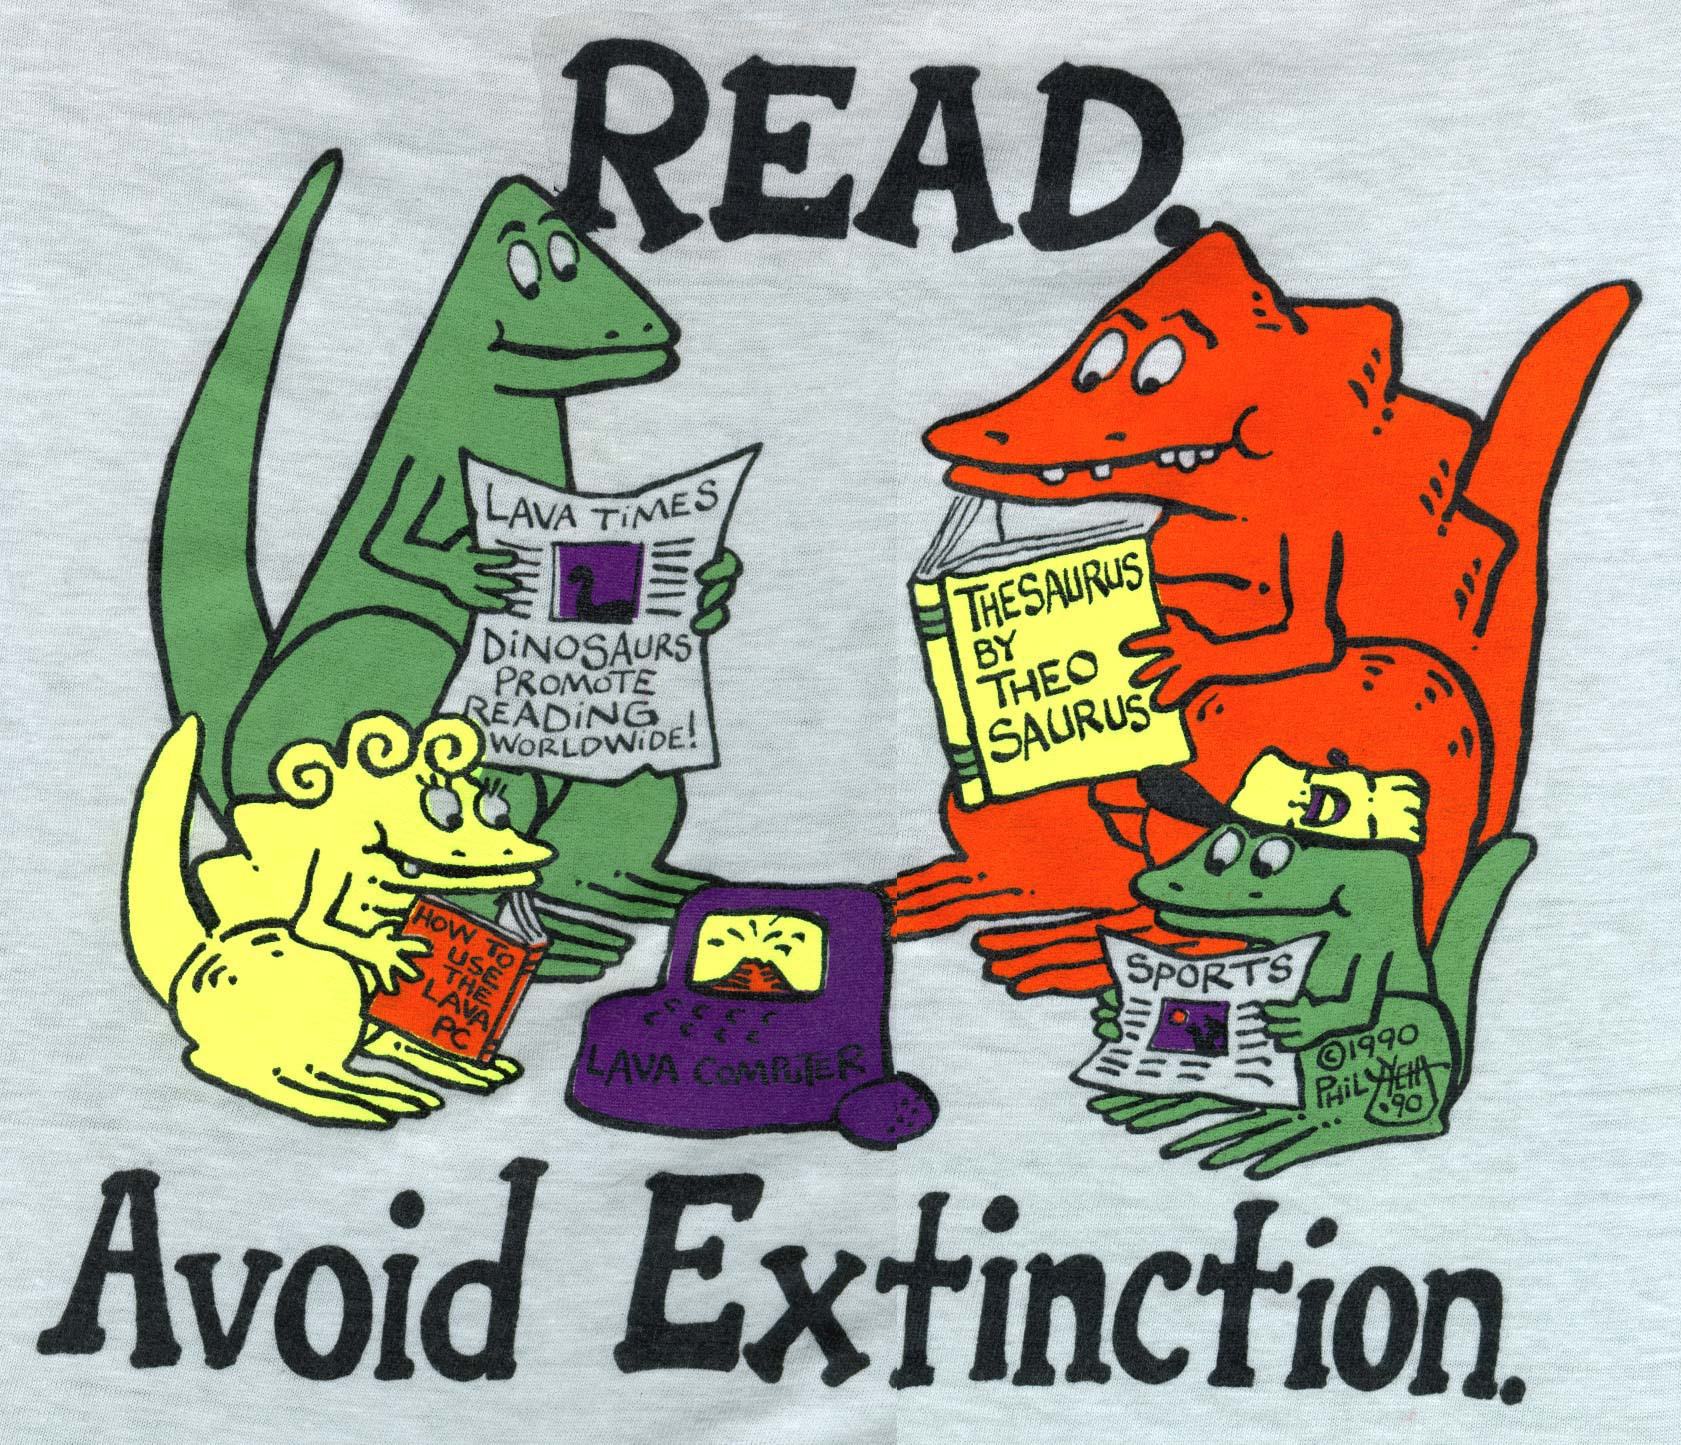 Read to avoid extinction